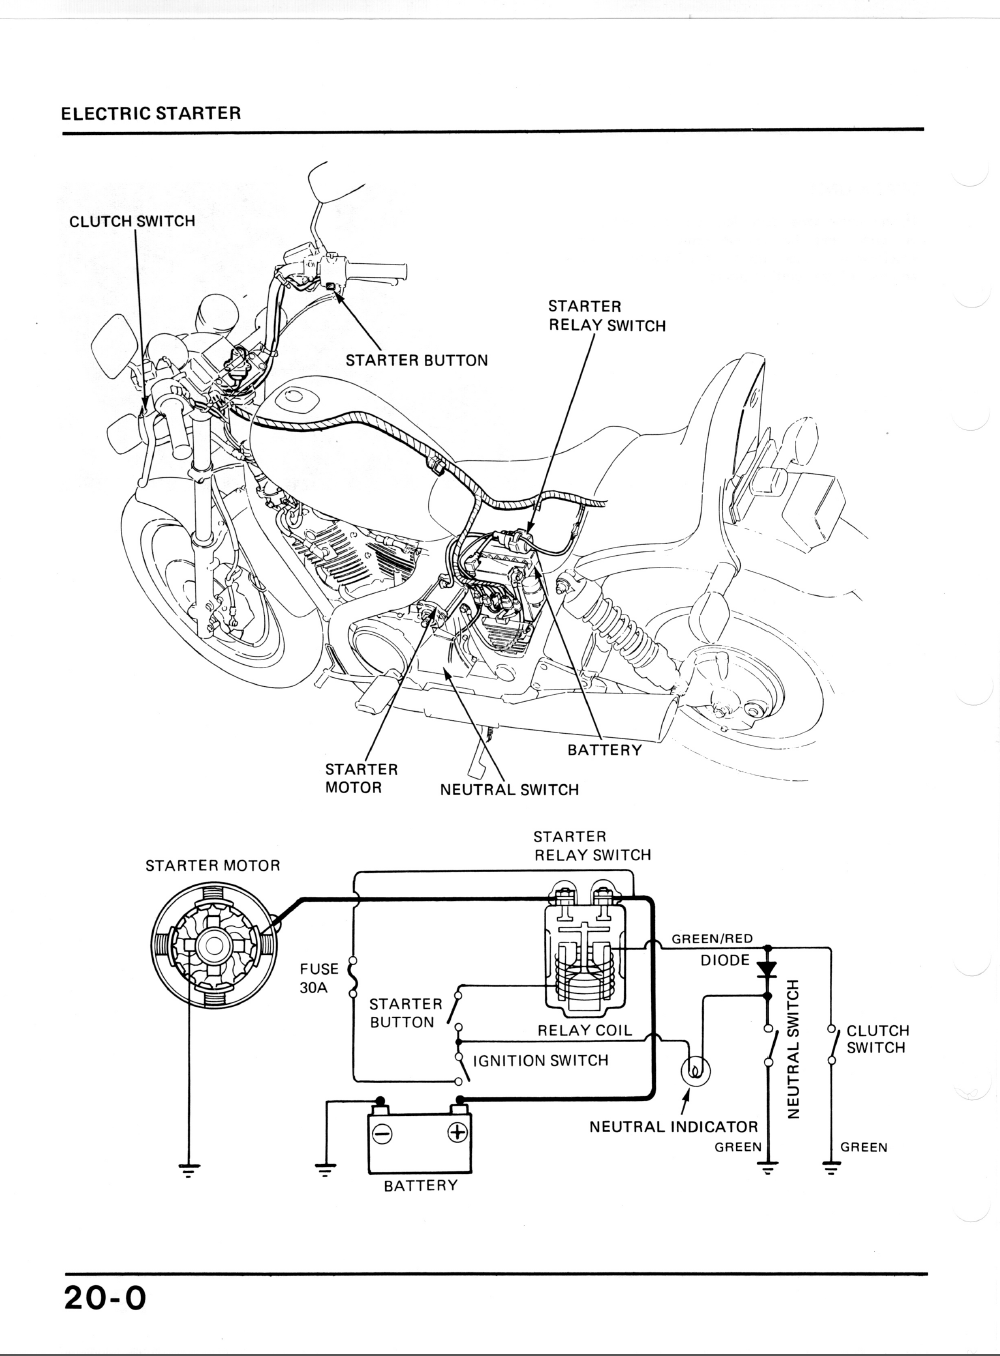 Wiring Diagram Honda Lead : Honda shadow